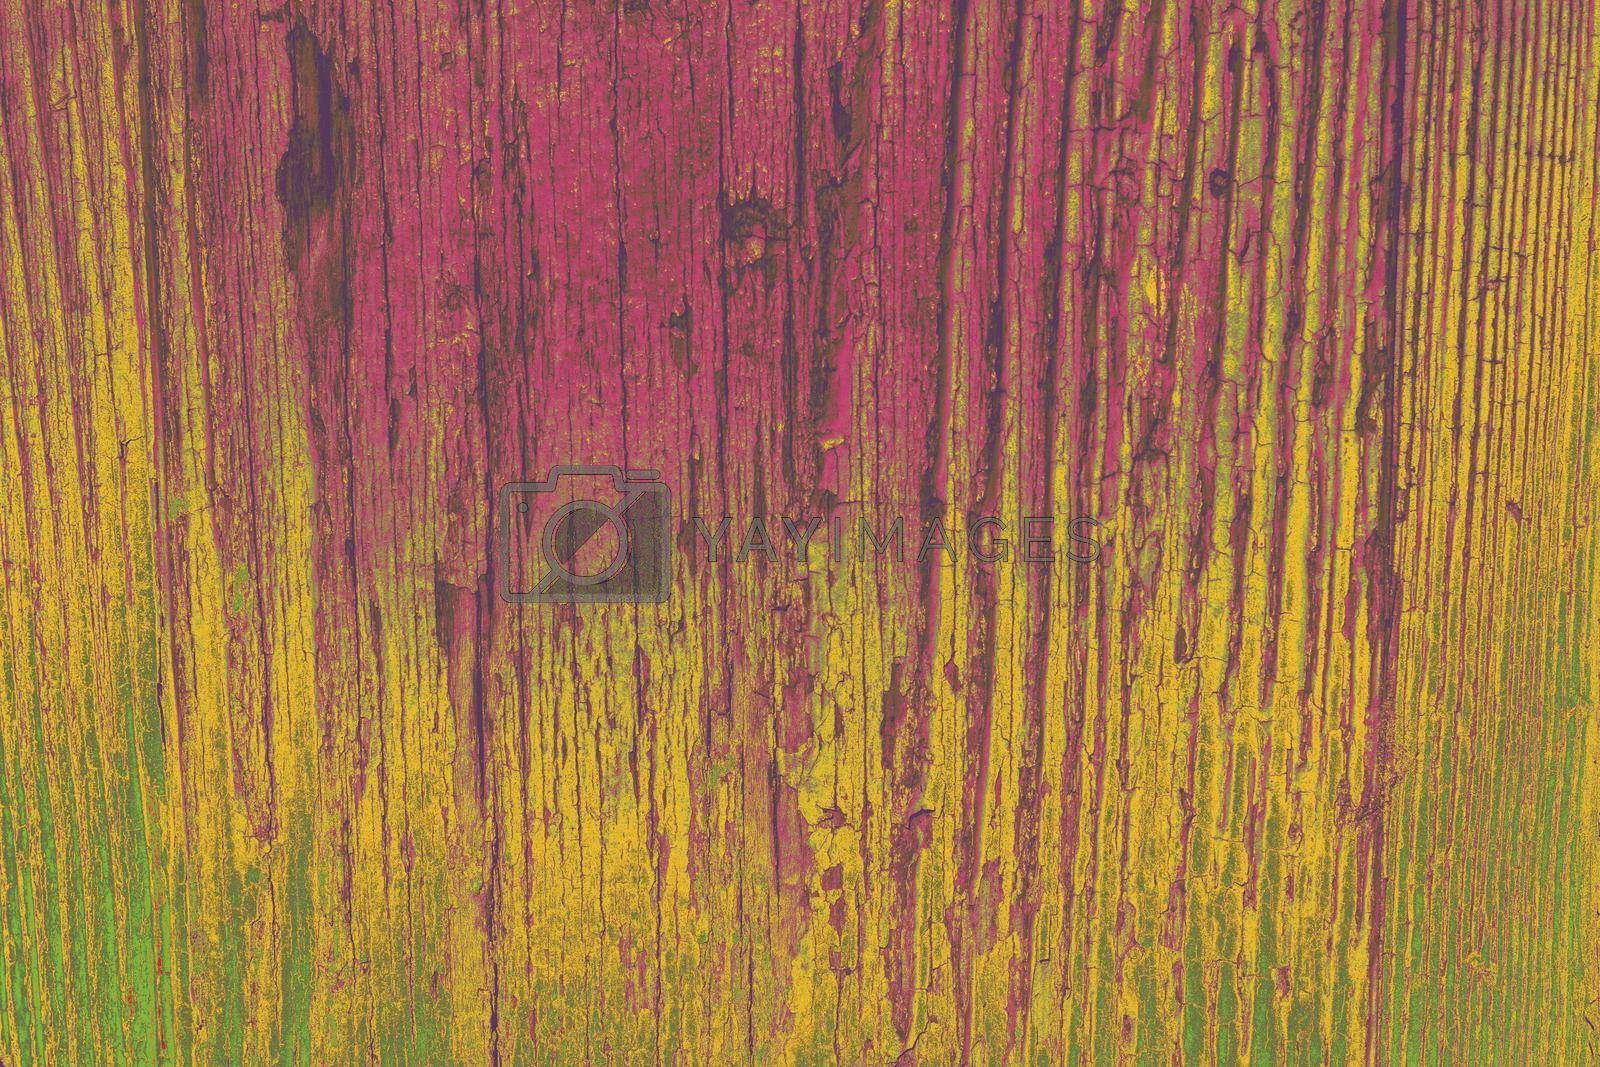 Wood boards, planks patterns background on wooden planks